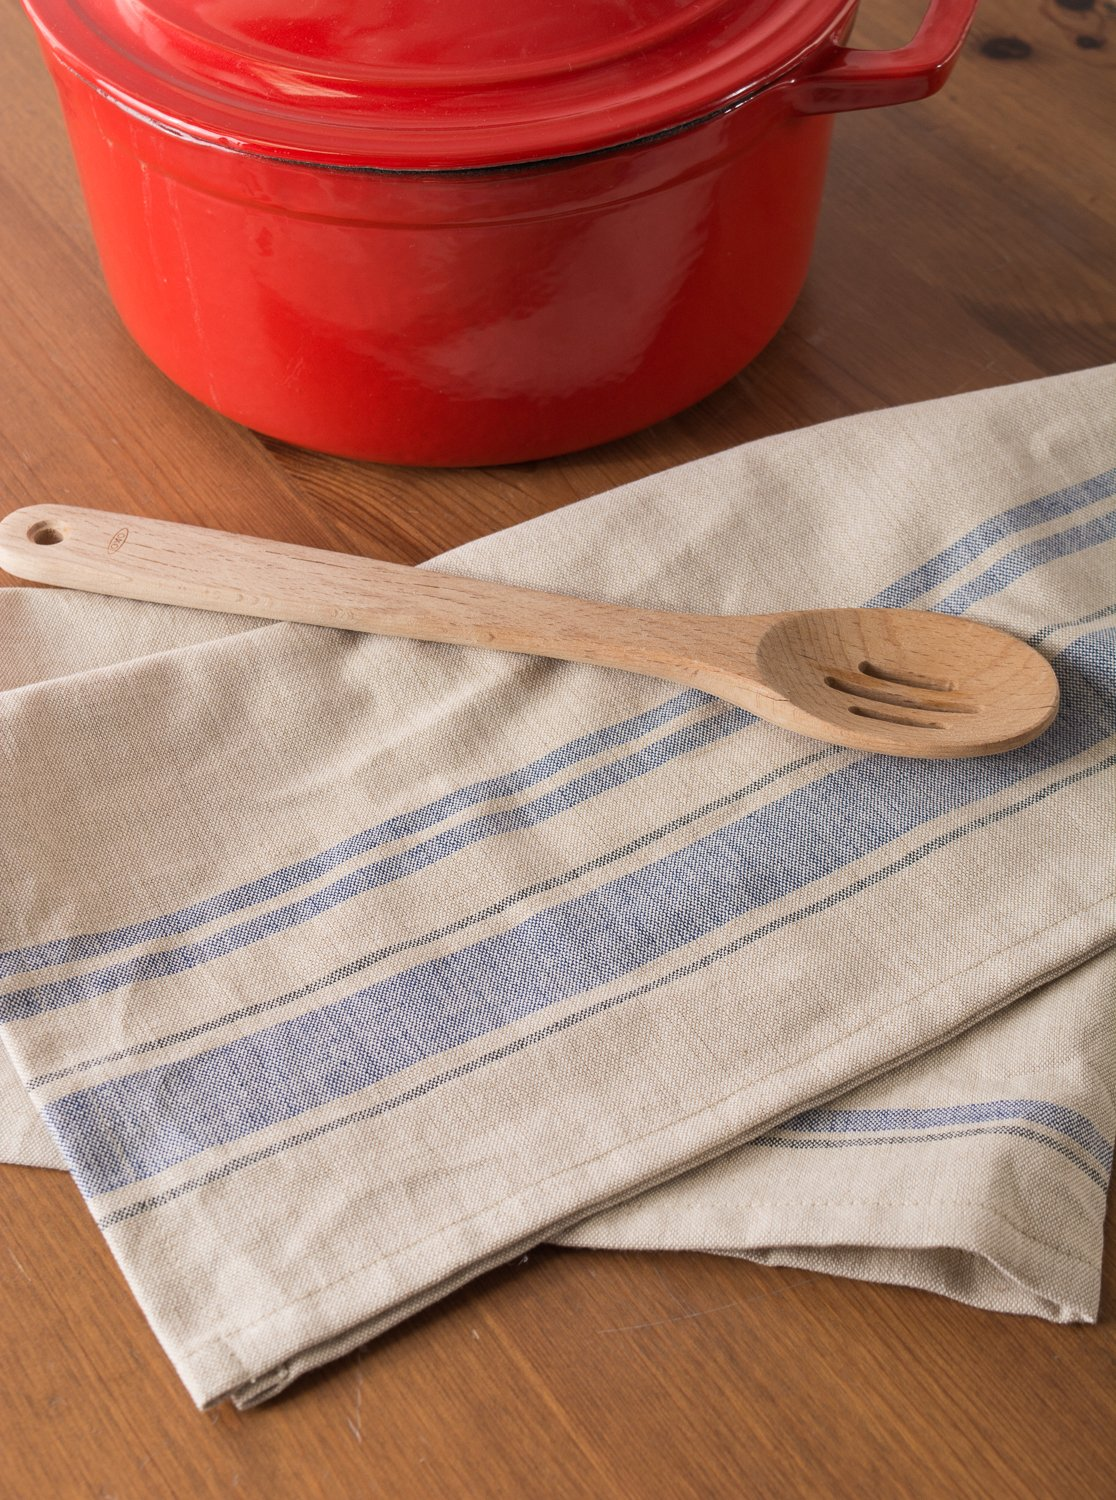 Flour Sack Tea Towels with a Farmhouse Appeal